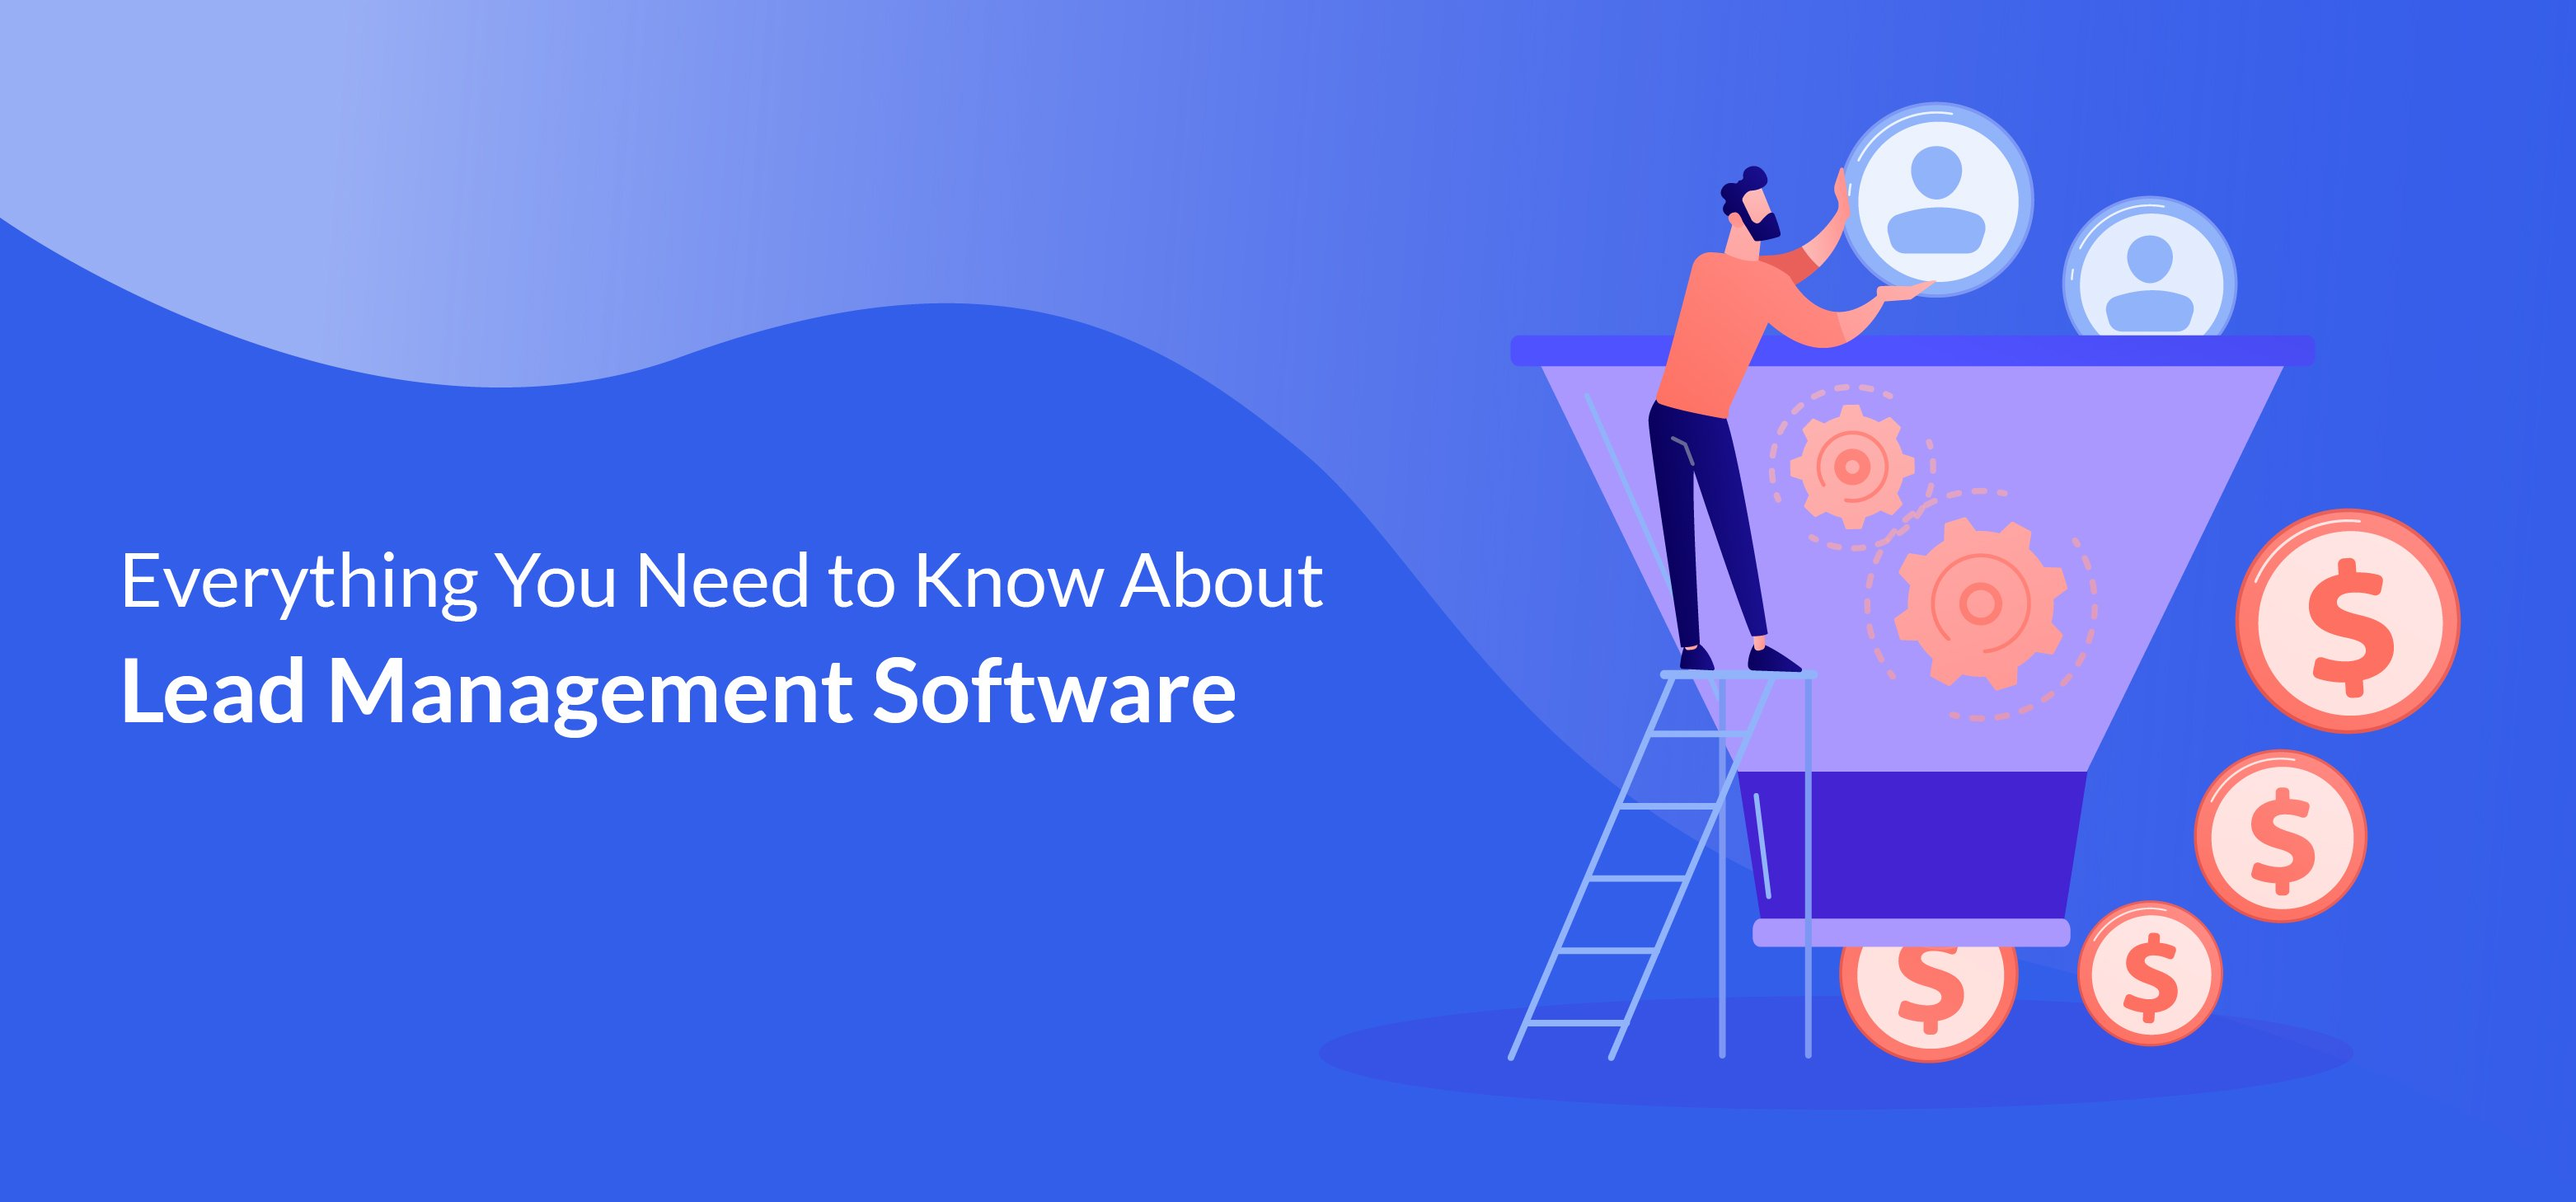 Everything You Need to Know About Lead Management Software